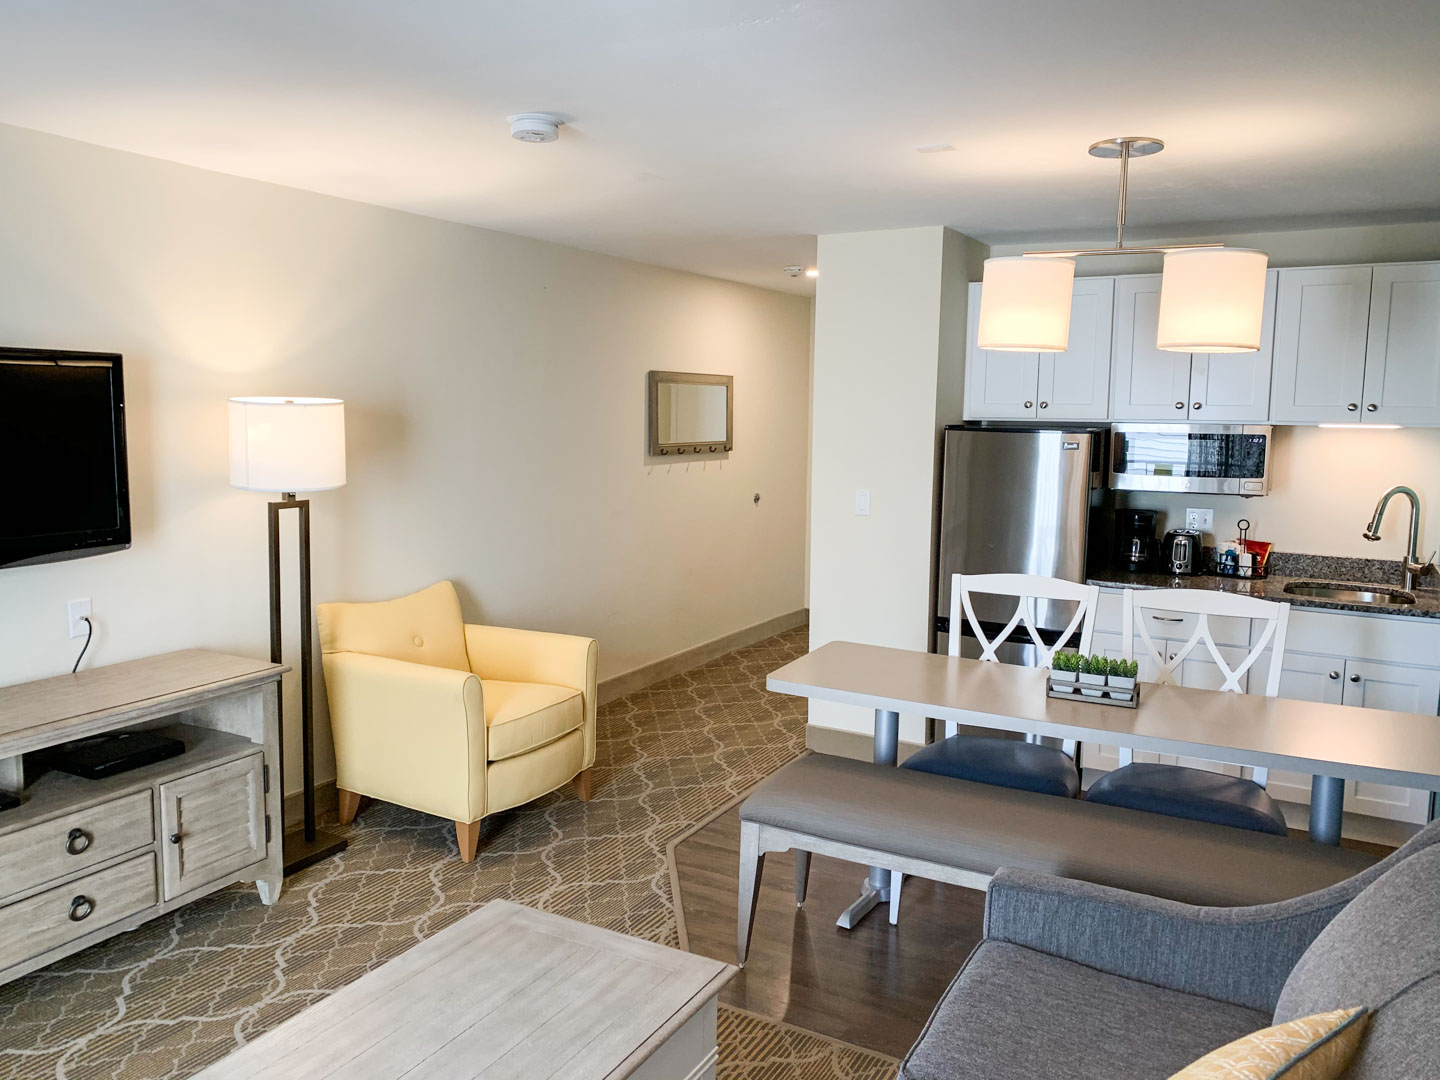 A cozy studio unit with a kitchenette at VRI's Riverview Resort in Massachusetts.